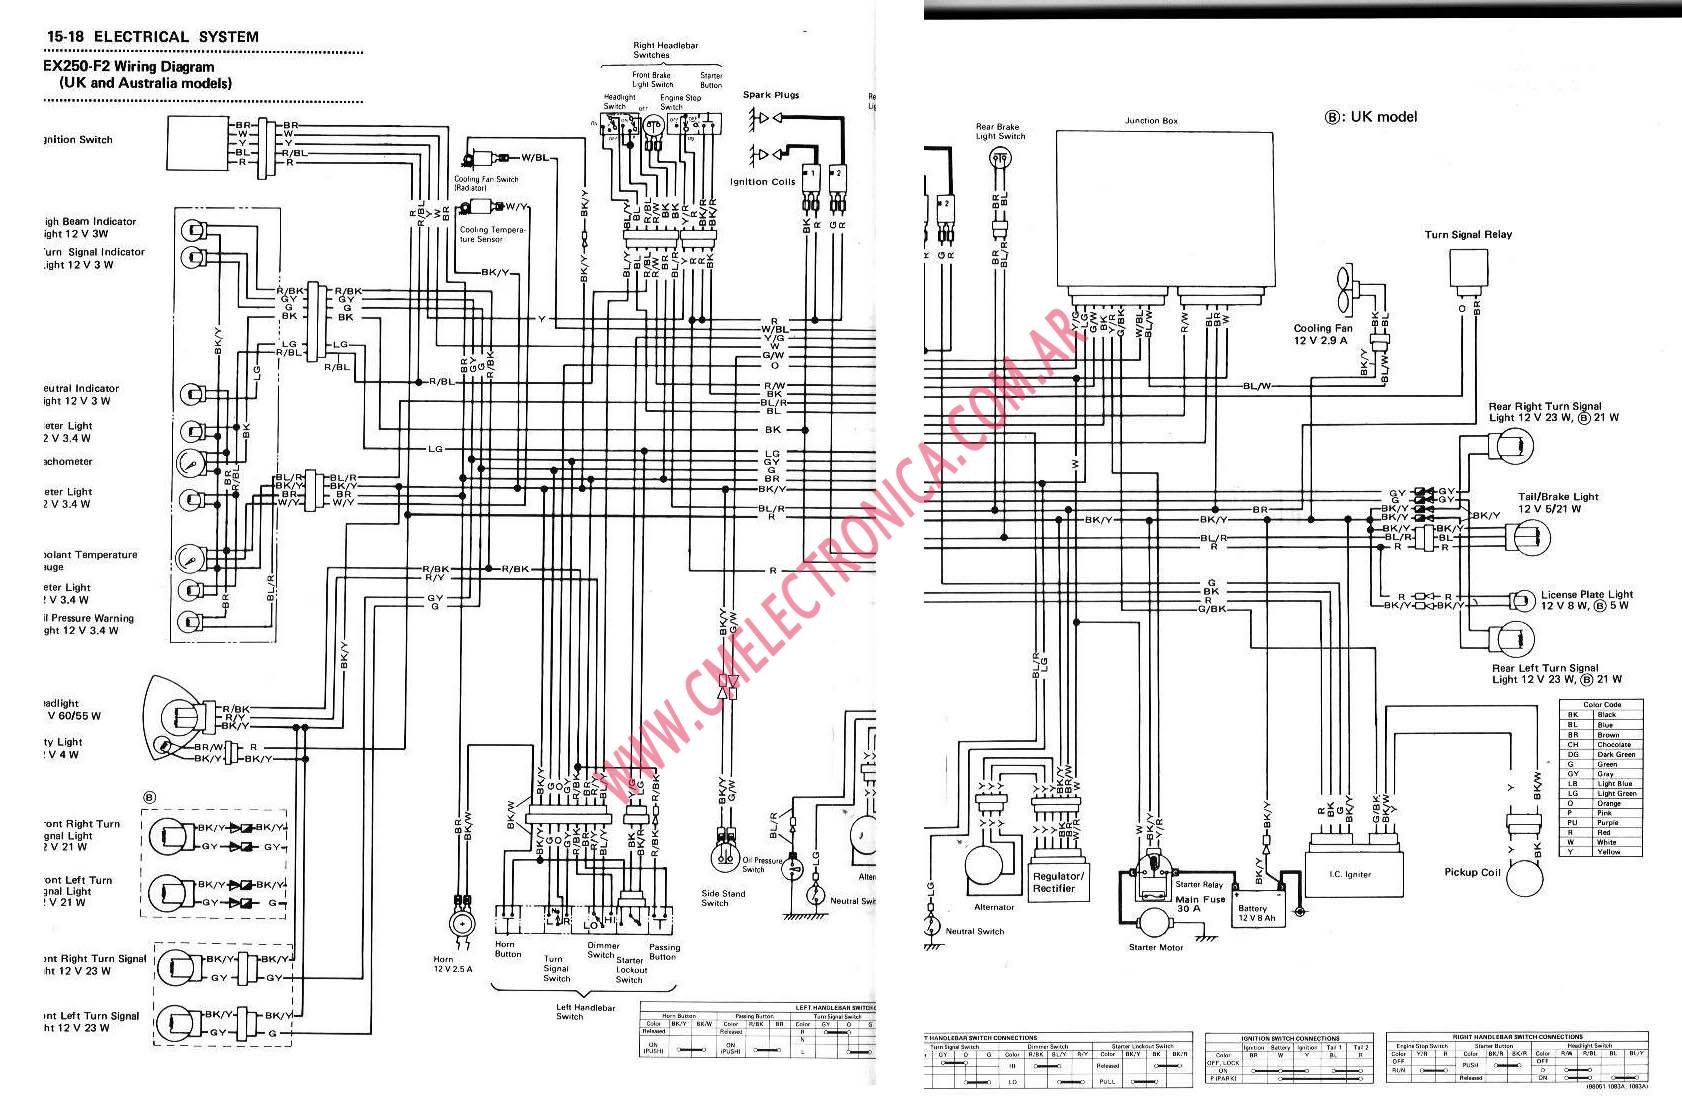 2003 Kawasaki Engine Diagram Free Wiring For You Small Schematics 250 Bayou Atv Simple Schema Rh 5 Aspire Atlantis De Diplay Half